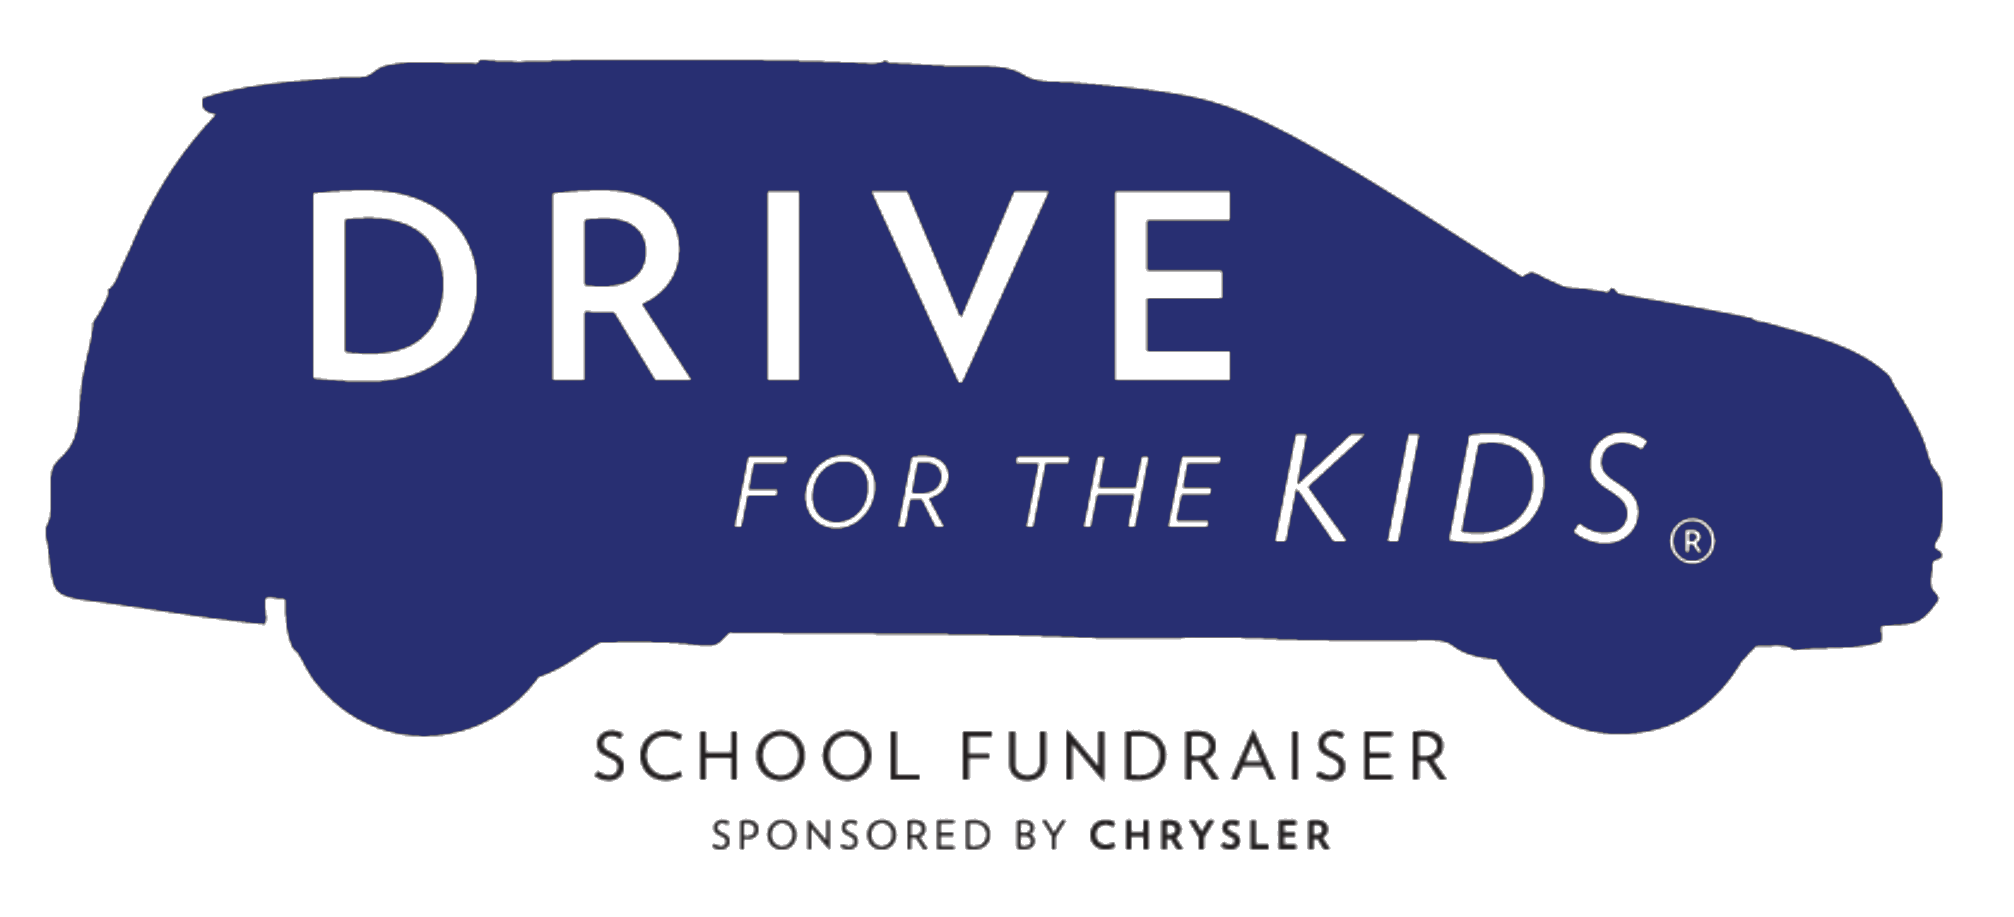 Drive for the Kids